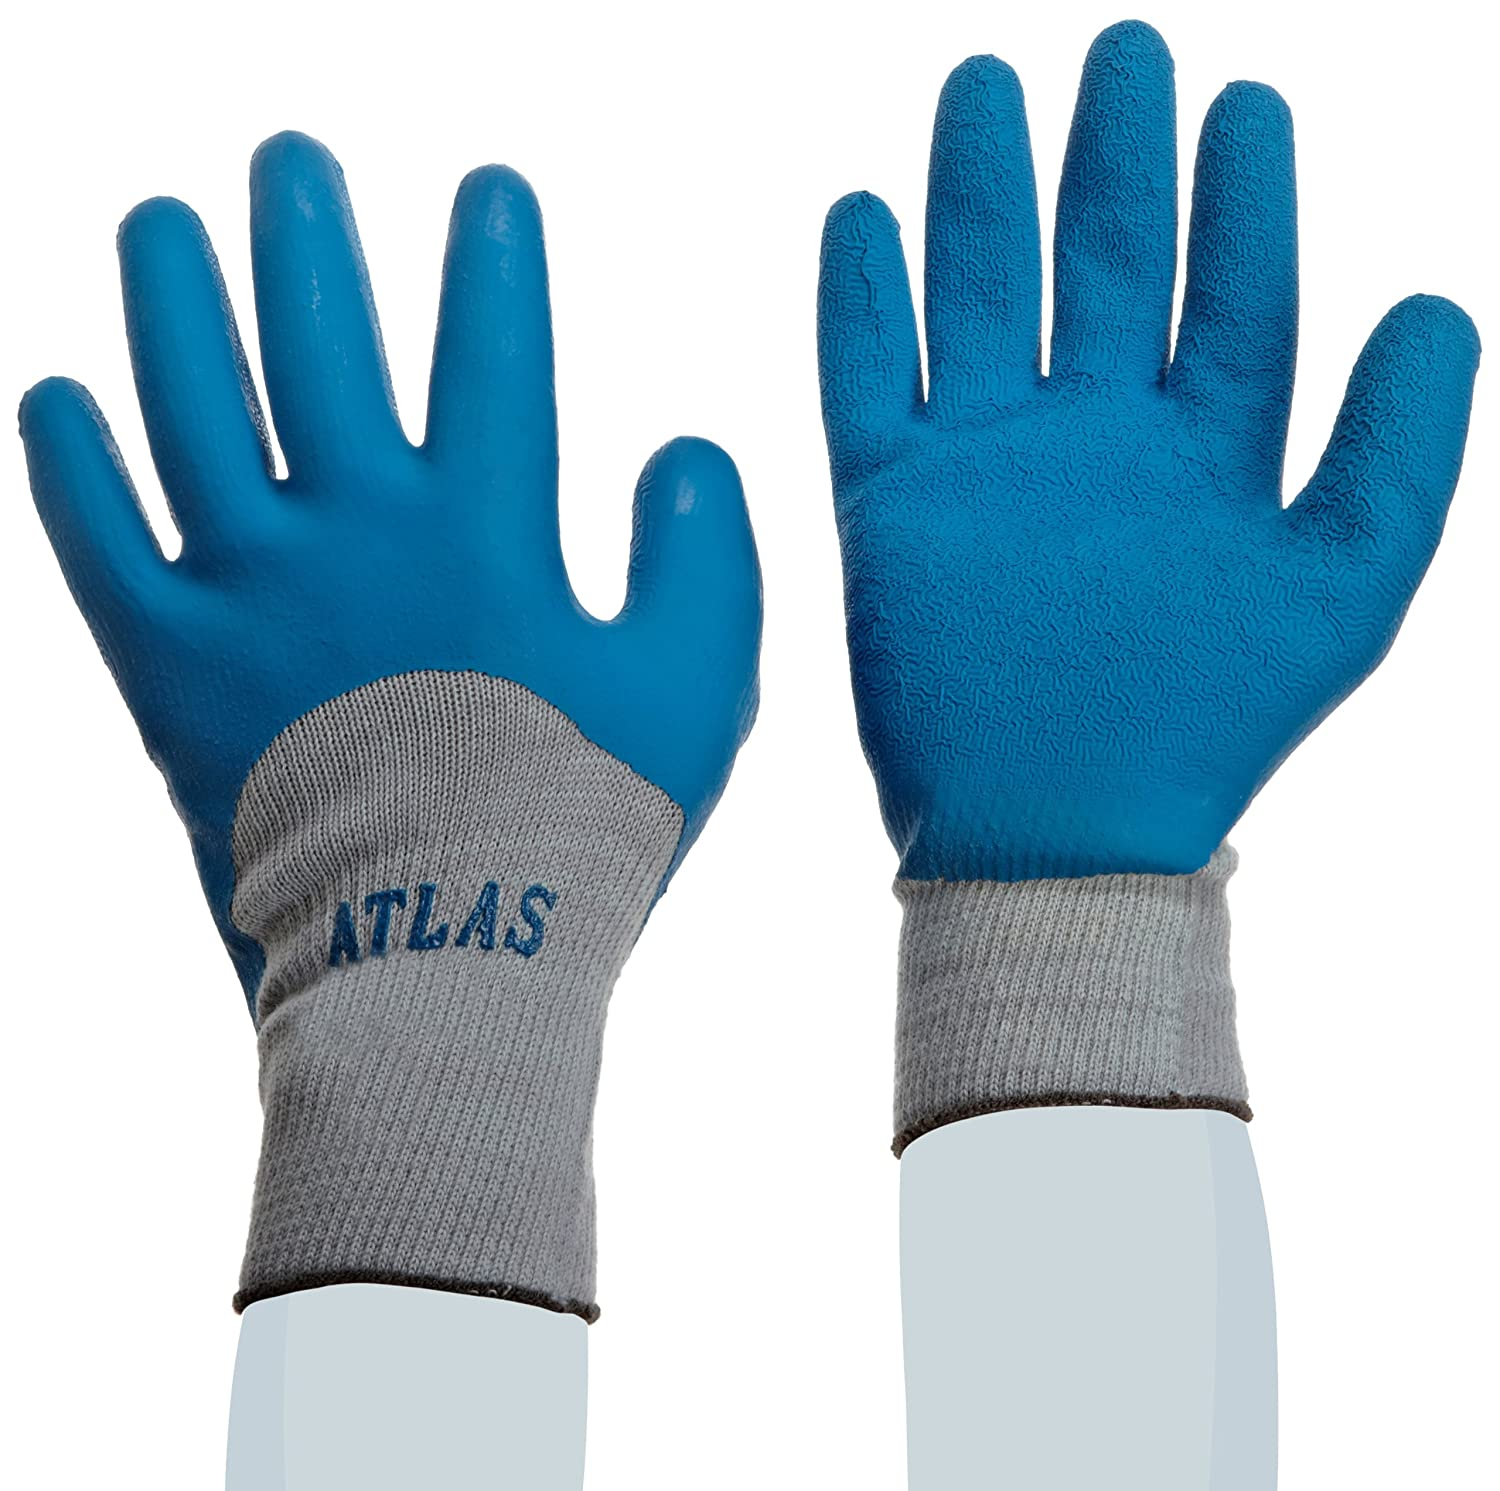 GENERAL PURPOSE SHOWA ATLAS FIT 300 NATURAL RUBBER PALM COATED WORK GLOVES BLUE